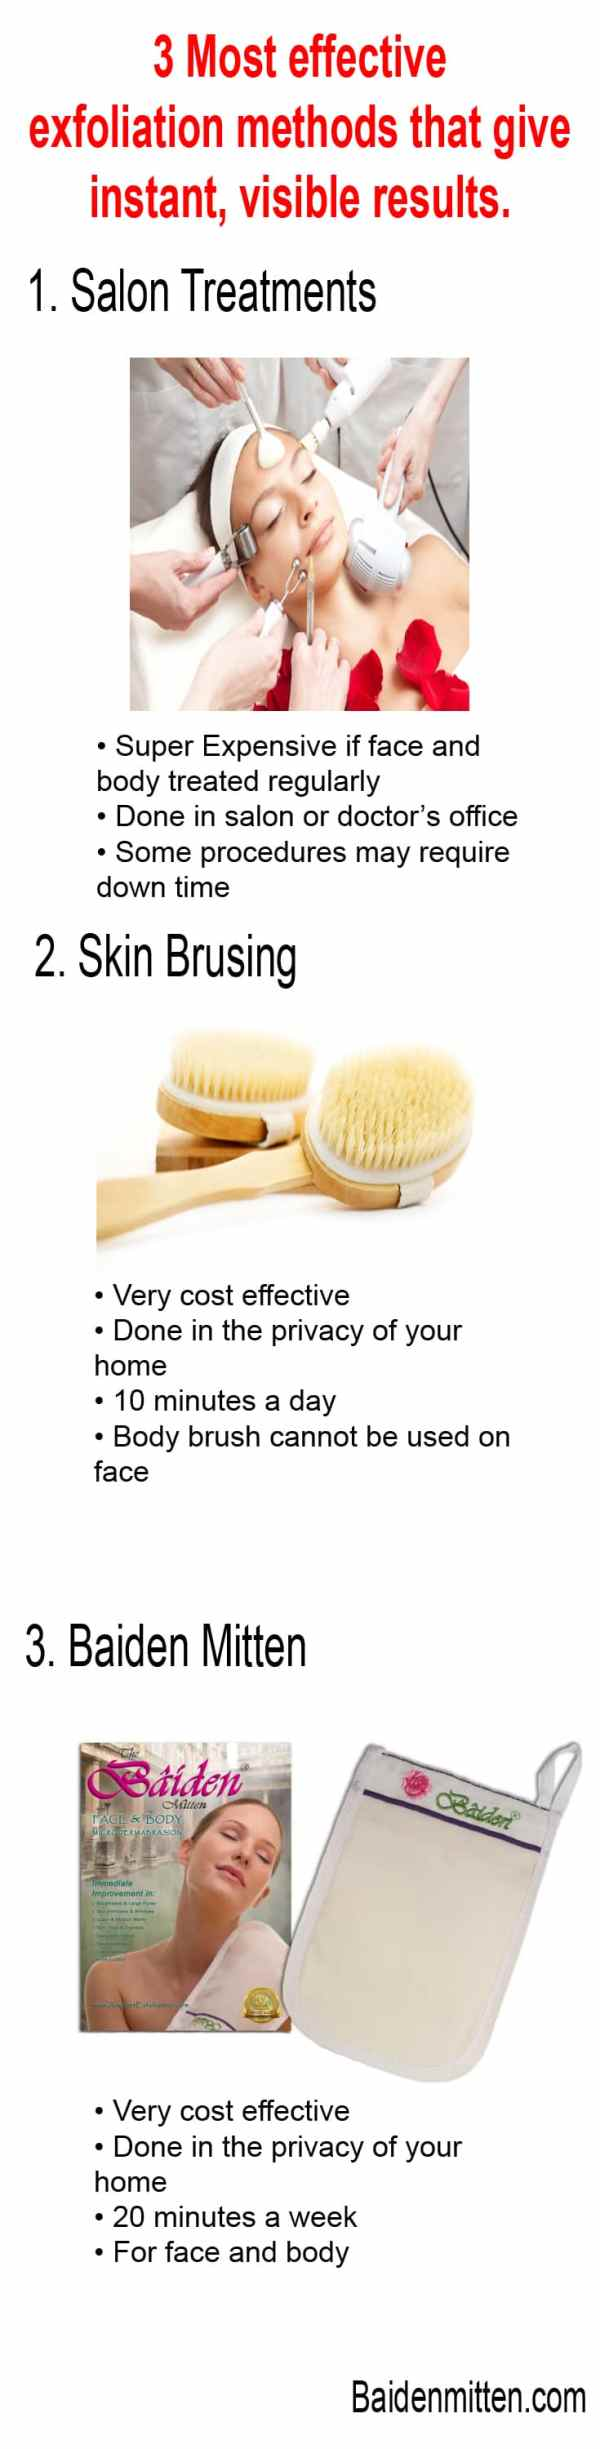 Best exfoliation methods